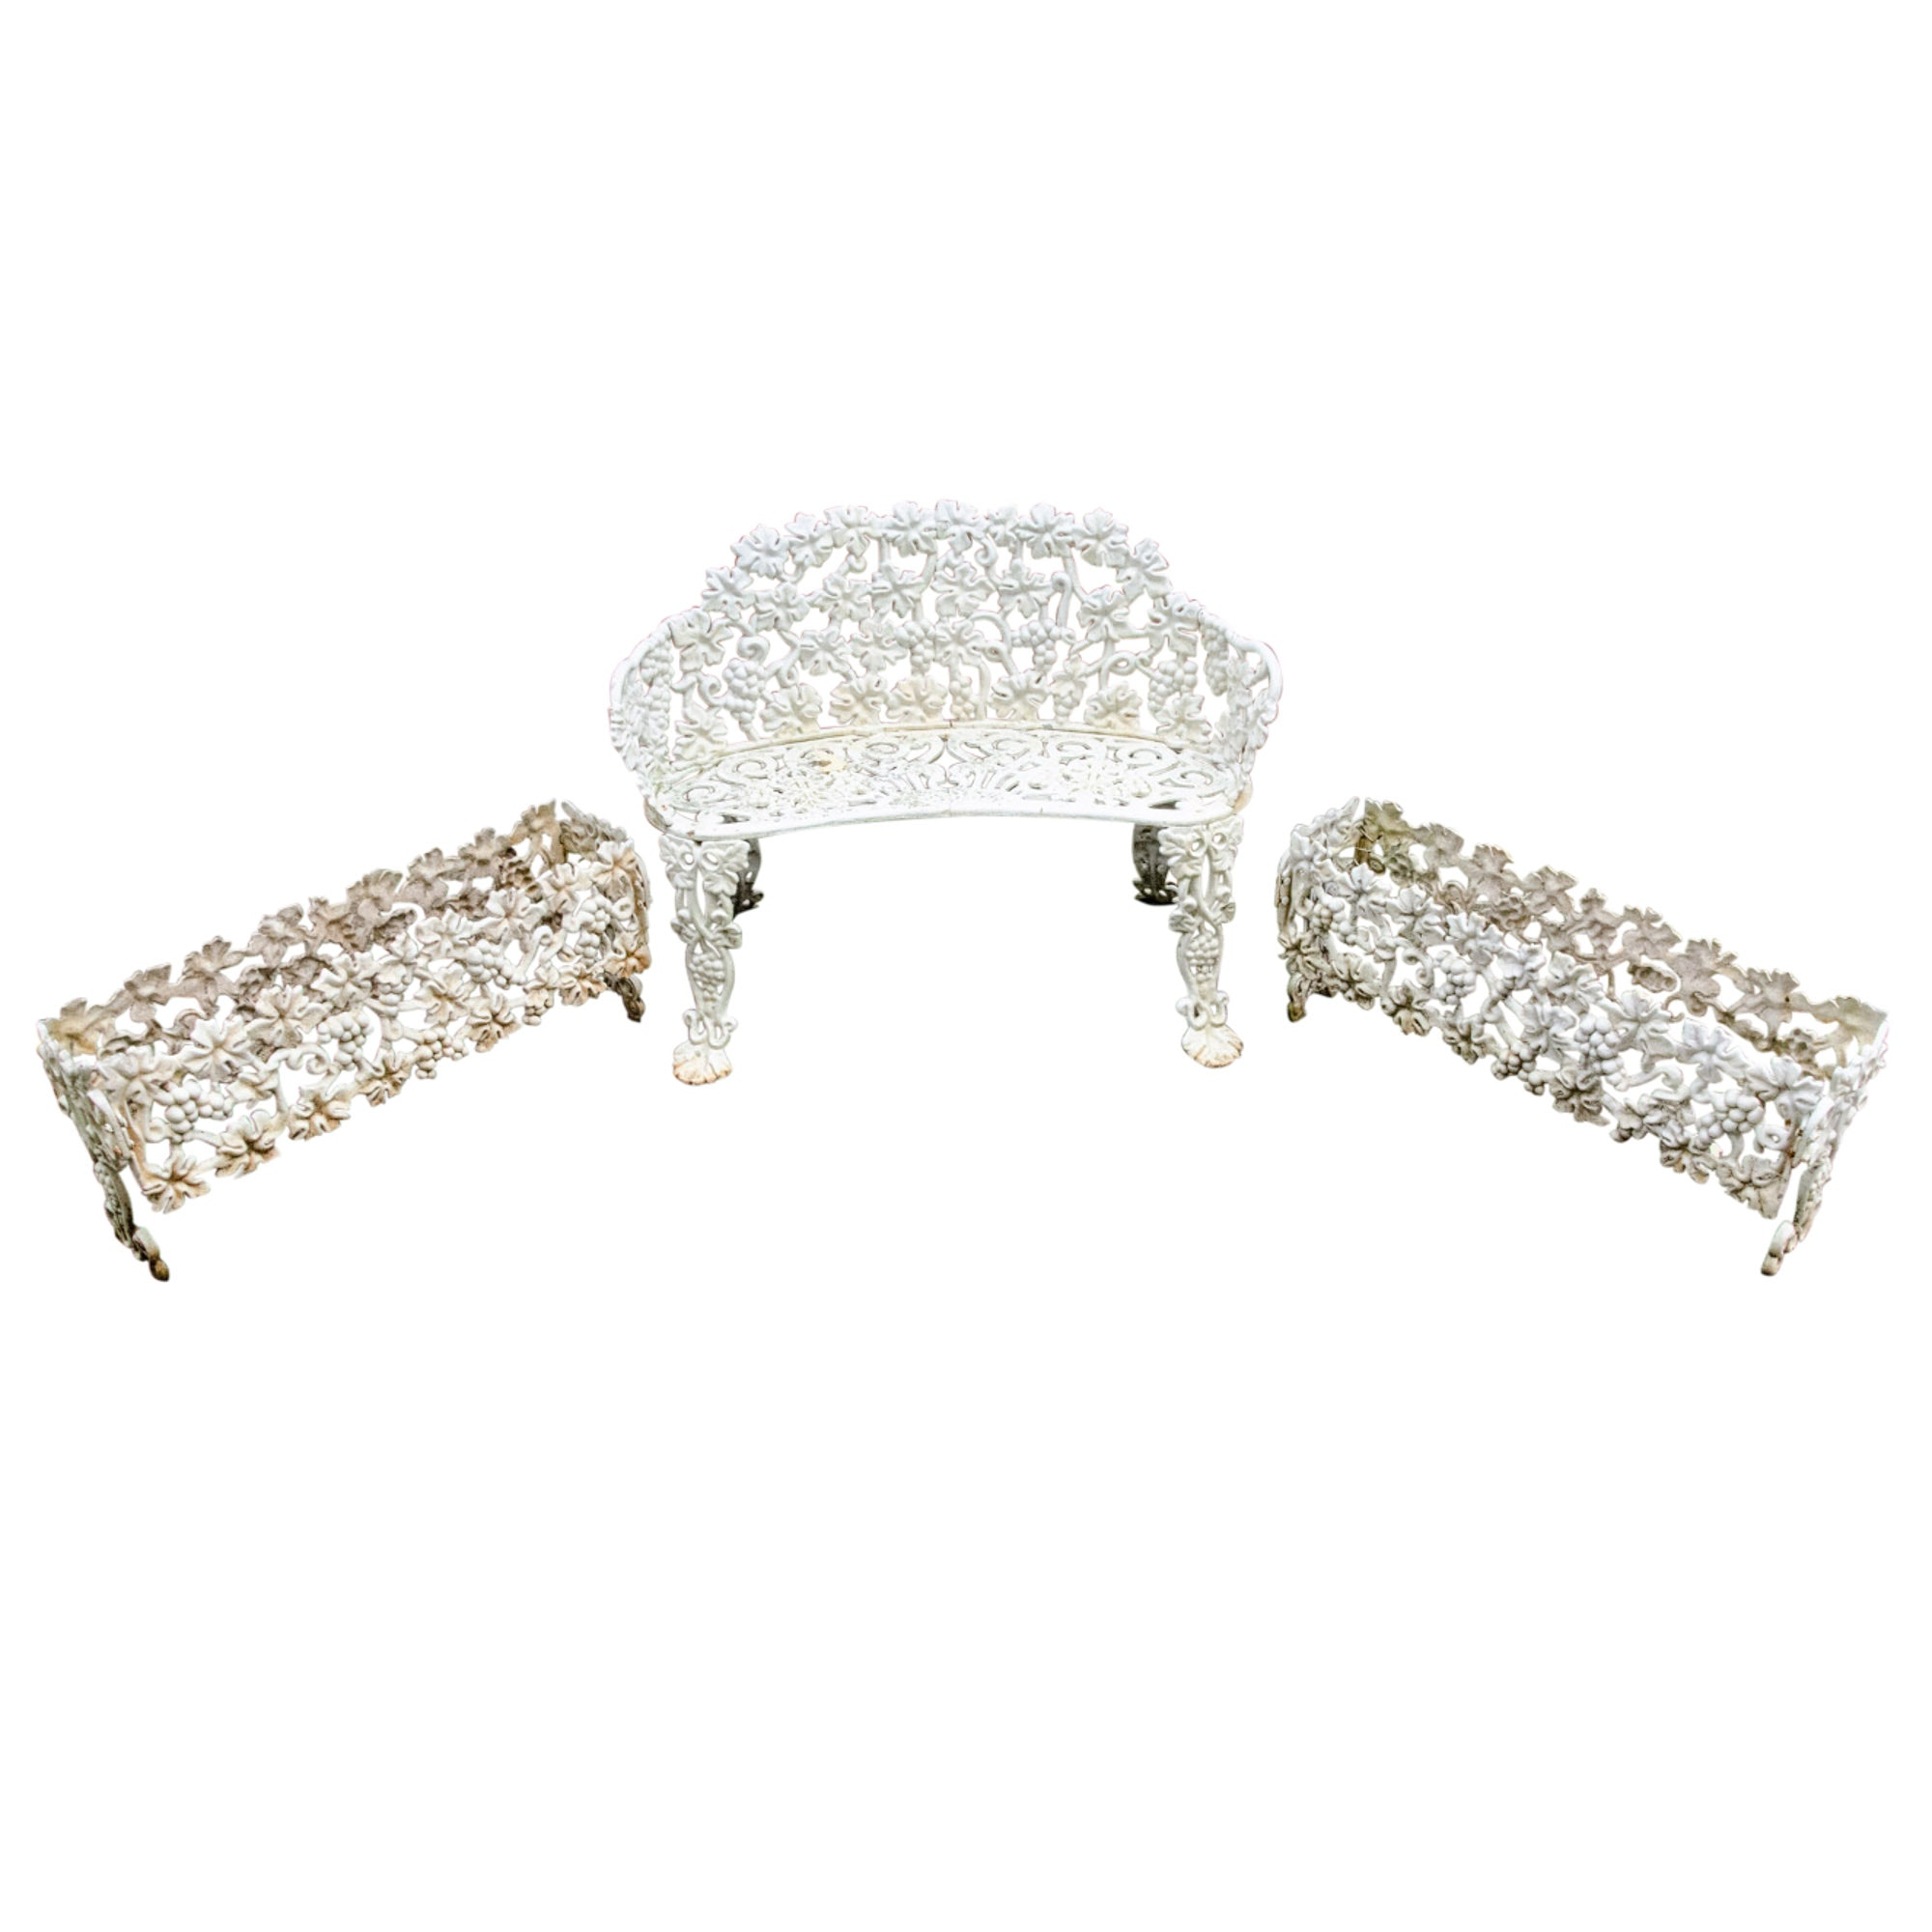 White Finish Grape Cluster and Vine Motif Cast Iron Garden Bench and Planters